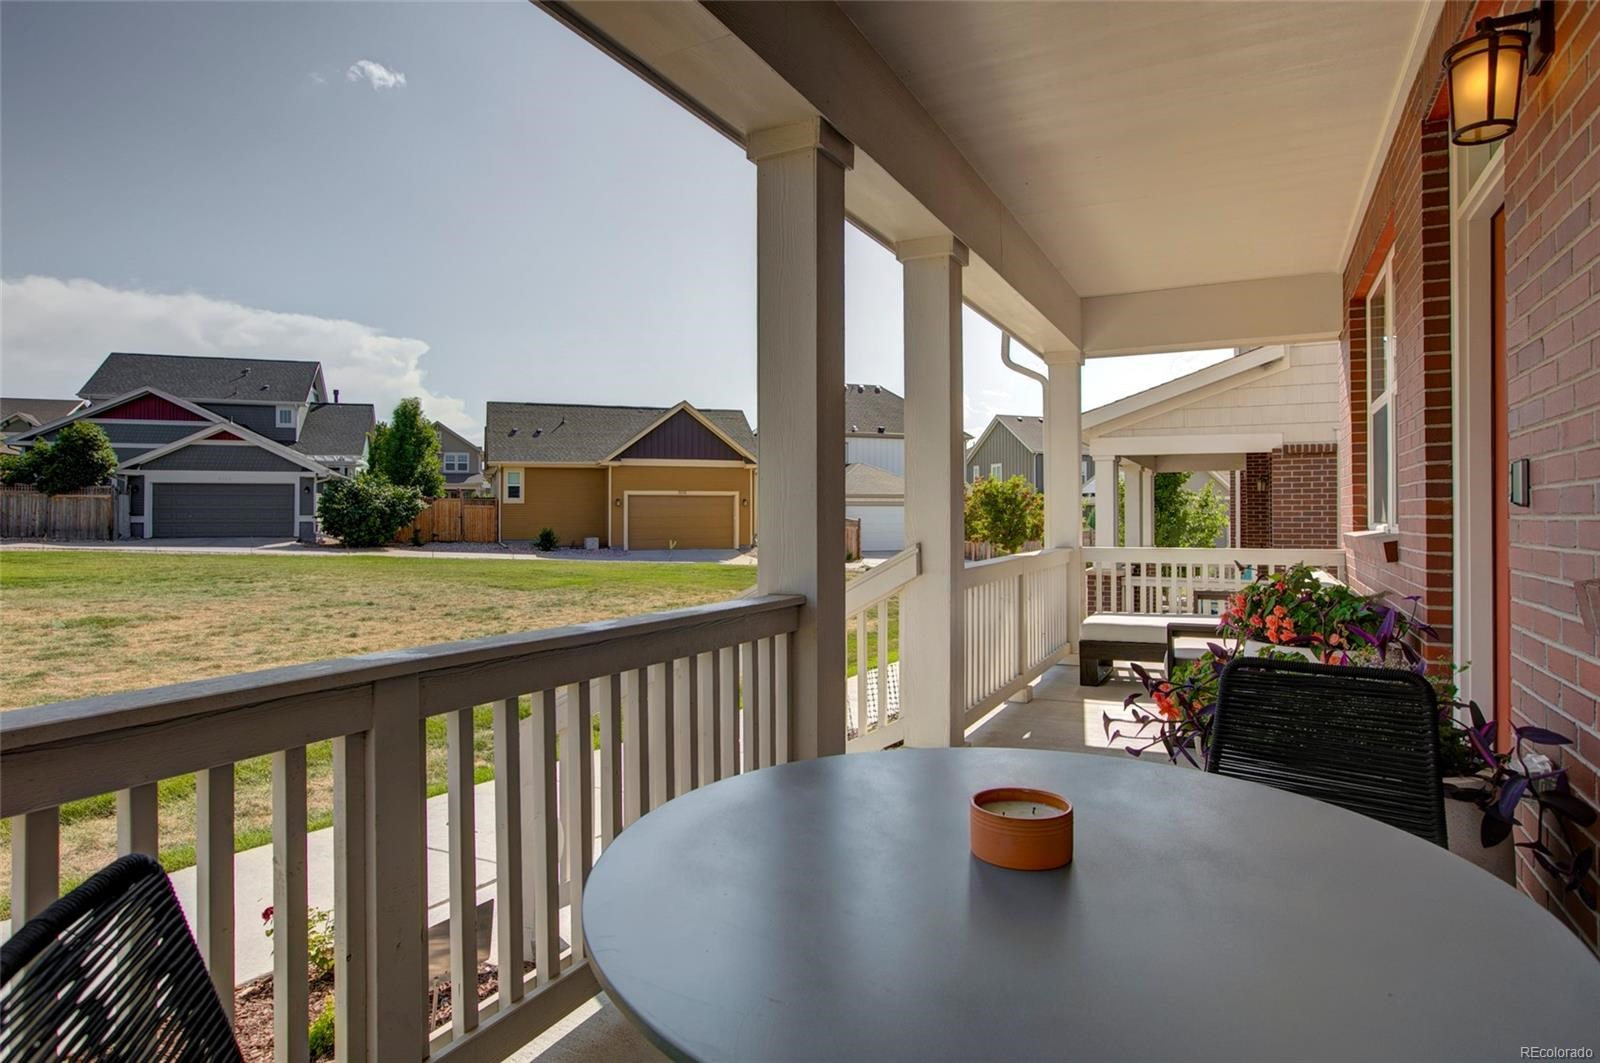 MLS# 1577922 - 6 - 5527 W 97th Court, Westminster, CO 80020